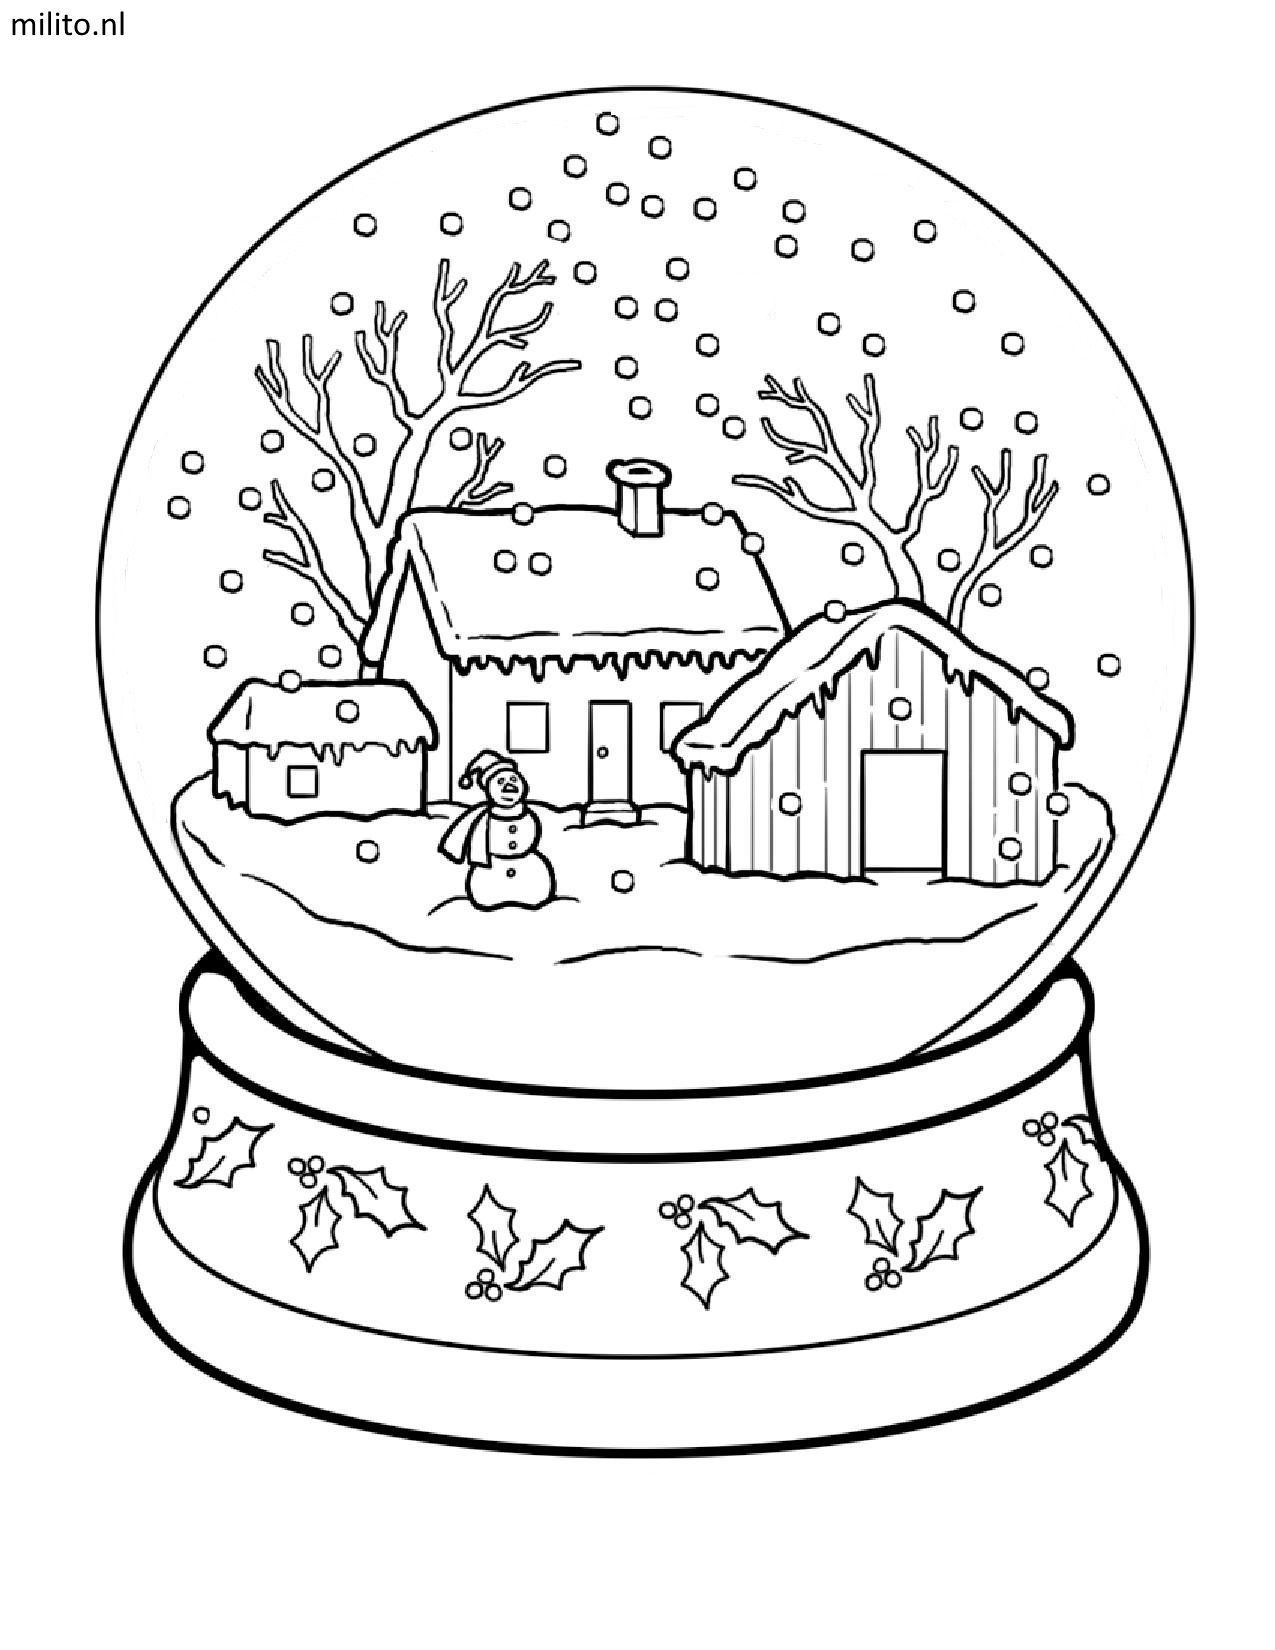 Kleurplaat Kerst Coloring Pages Winter Christmas Coloring Pages Holiday Worksheets